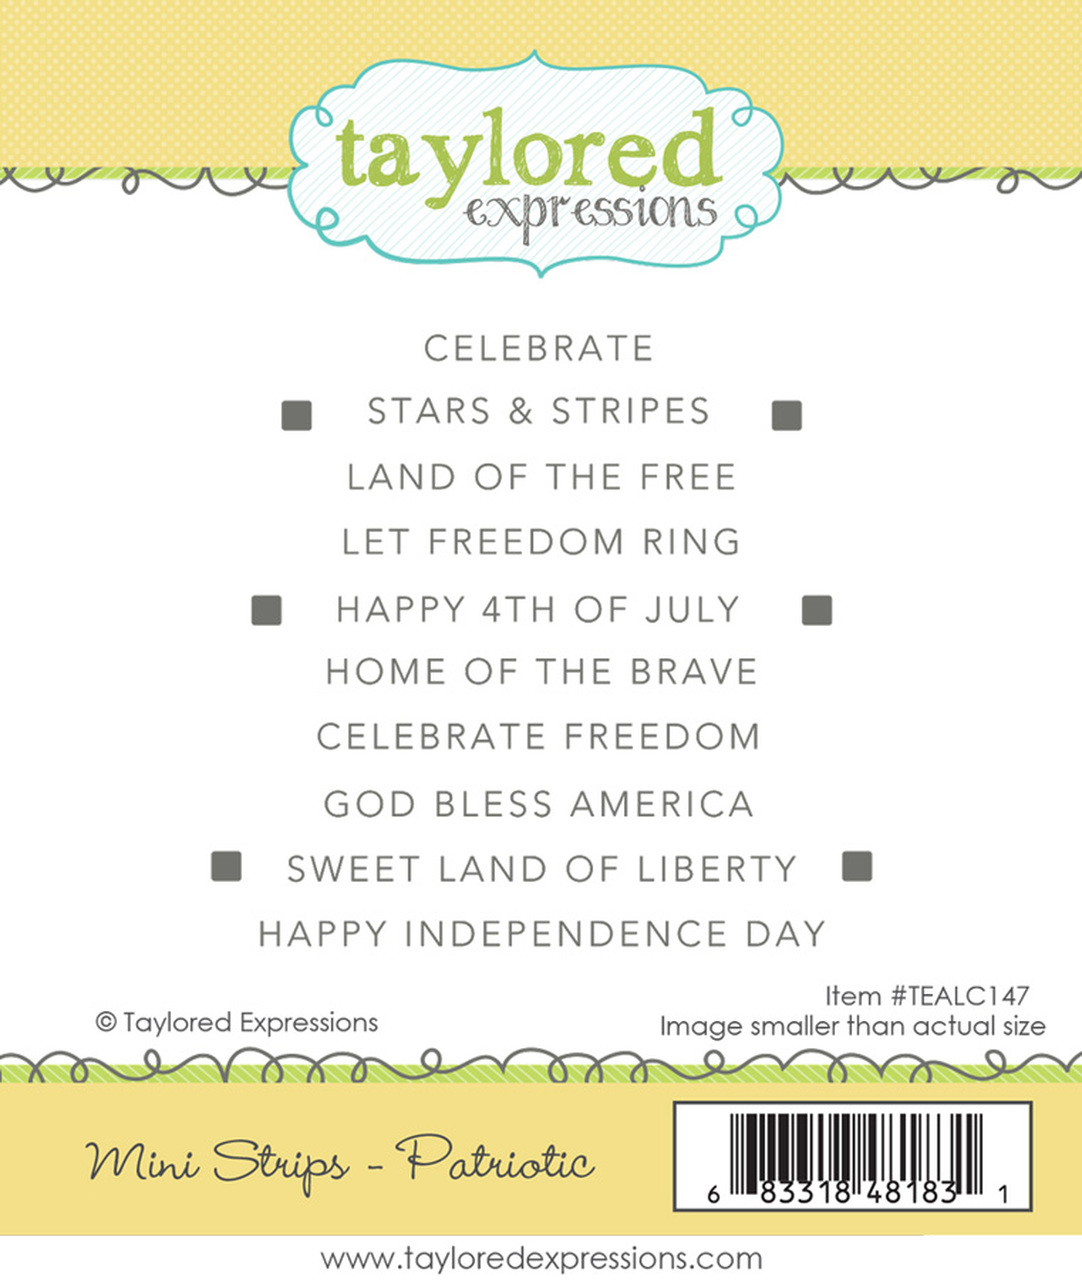 Mini Strips - Patriotic Stamp Set